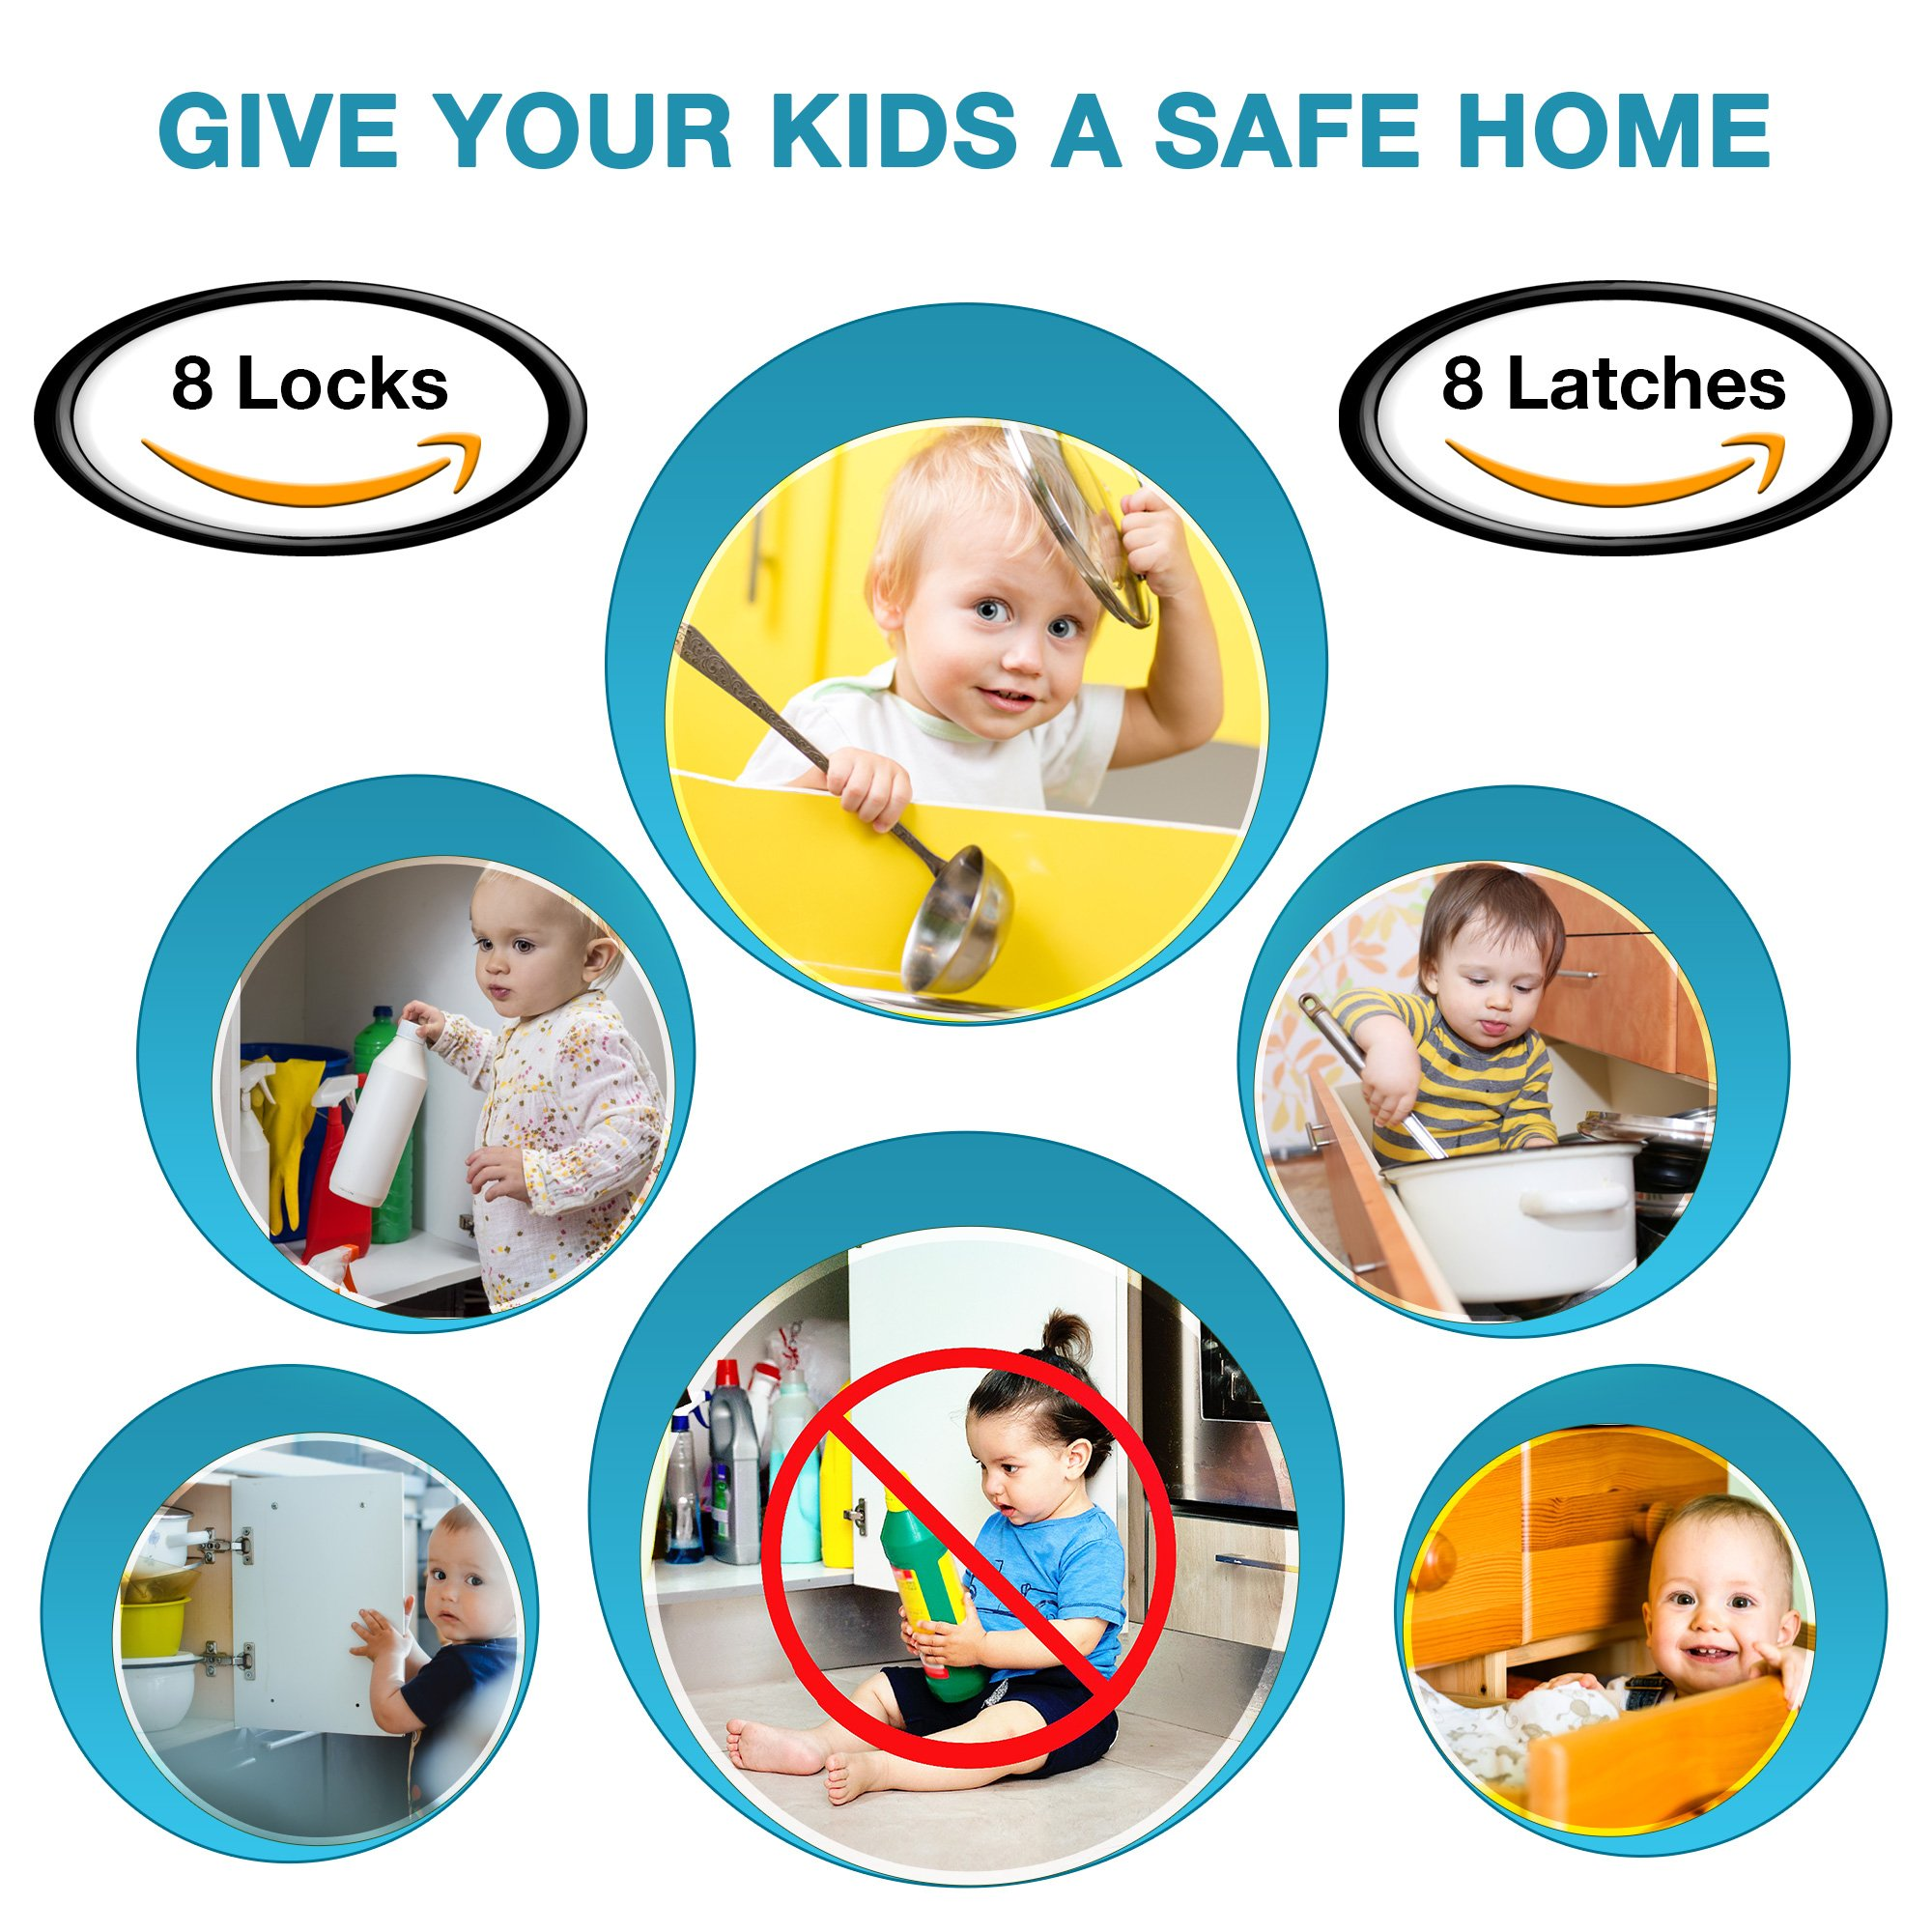 Invisible Magnetic No Drill Safety Lock: Keep Your Baby Safe! Secure Kitchen & Bedroom Cabinets & cupboards With 8 Child Proof Door & Drawer Locks for Kids & toddlers.2 Keys & 3M Adhesive Straps by MQP (Image #10)